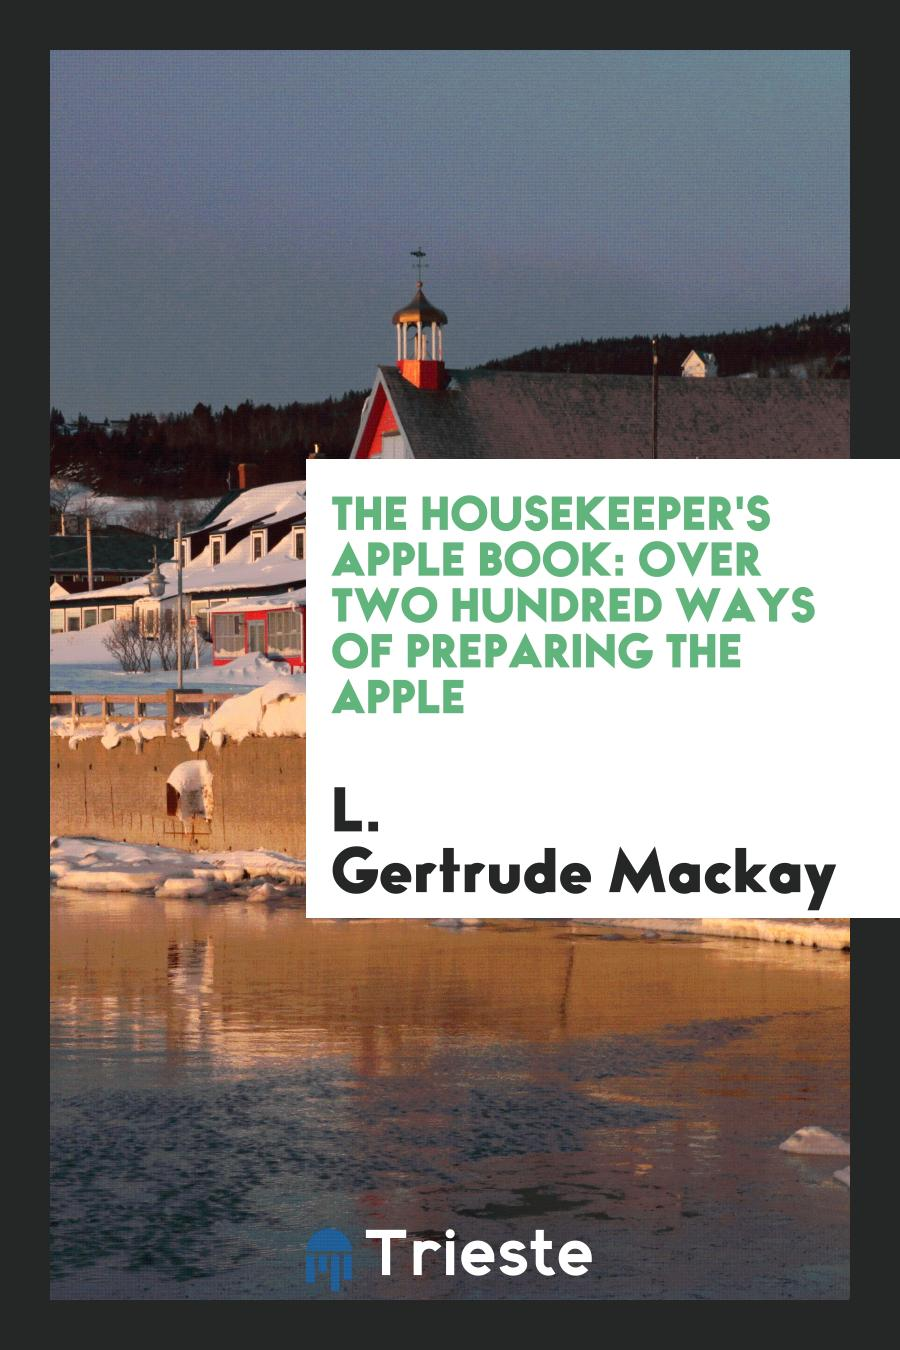 The Housekeeper's Apple Book: Over Two Hundred Ways of Preparing the Apple